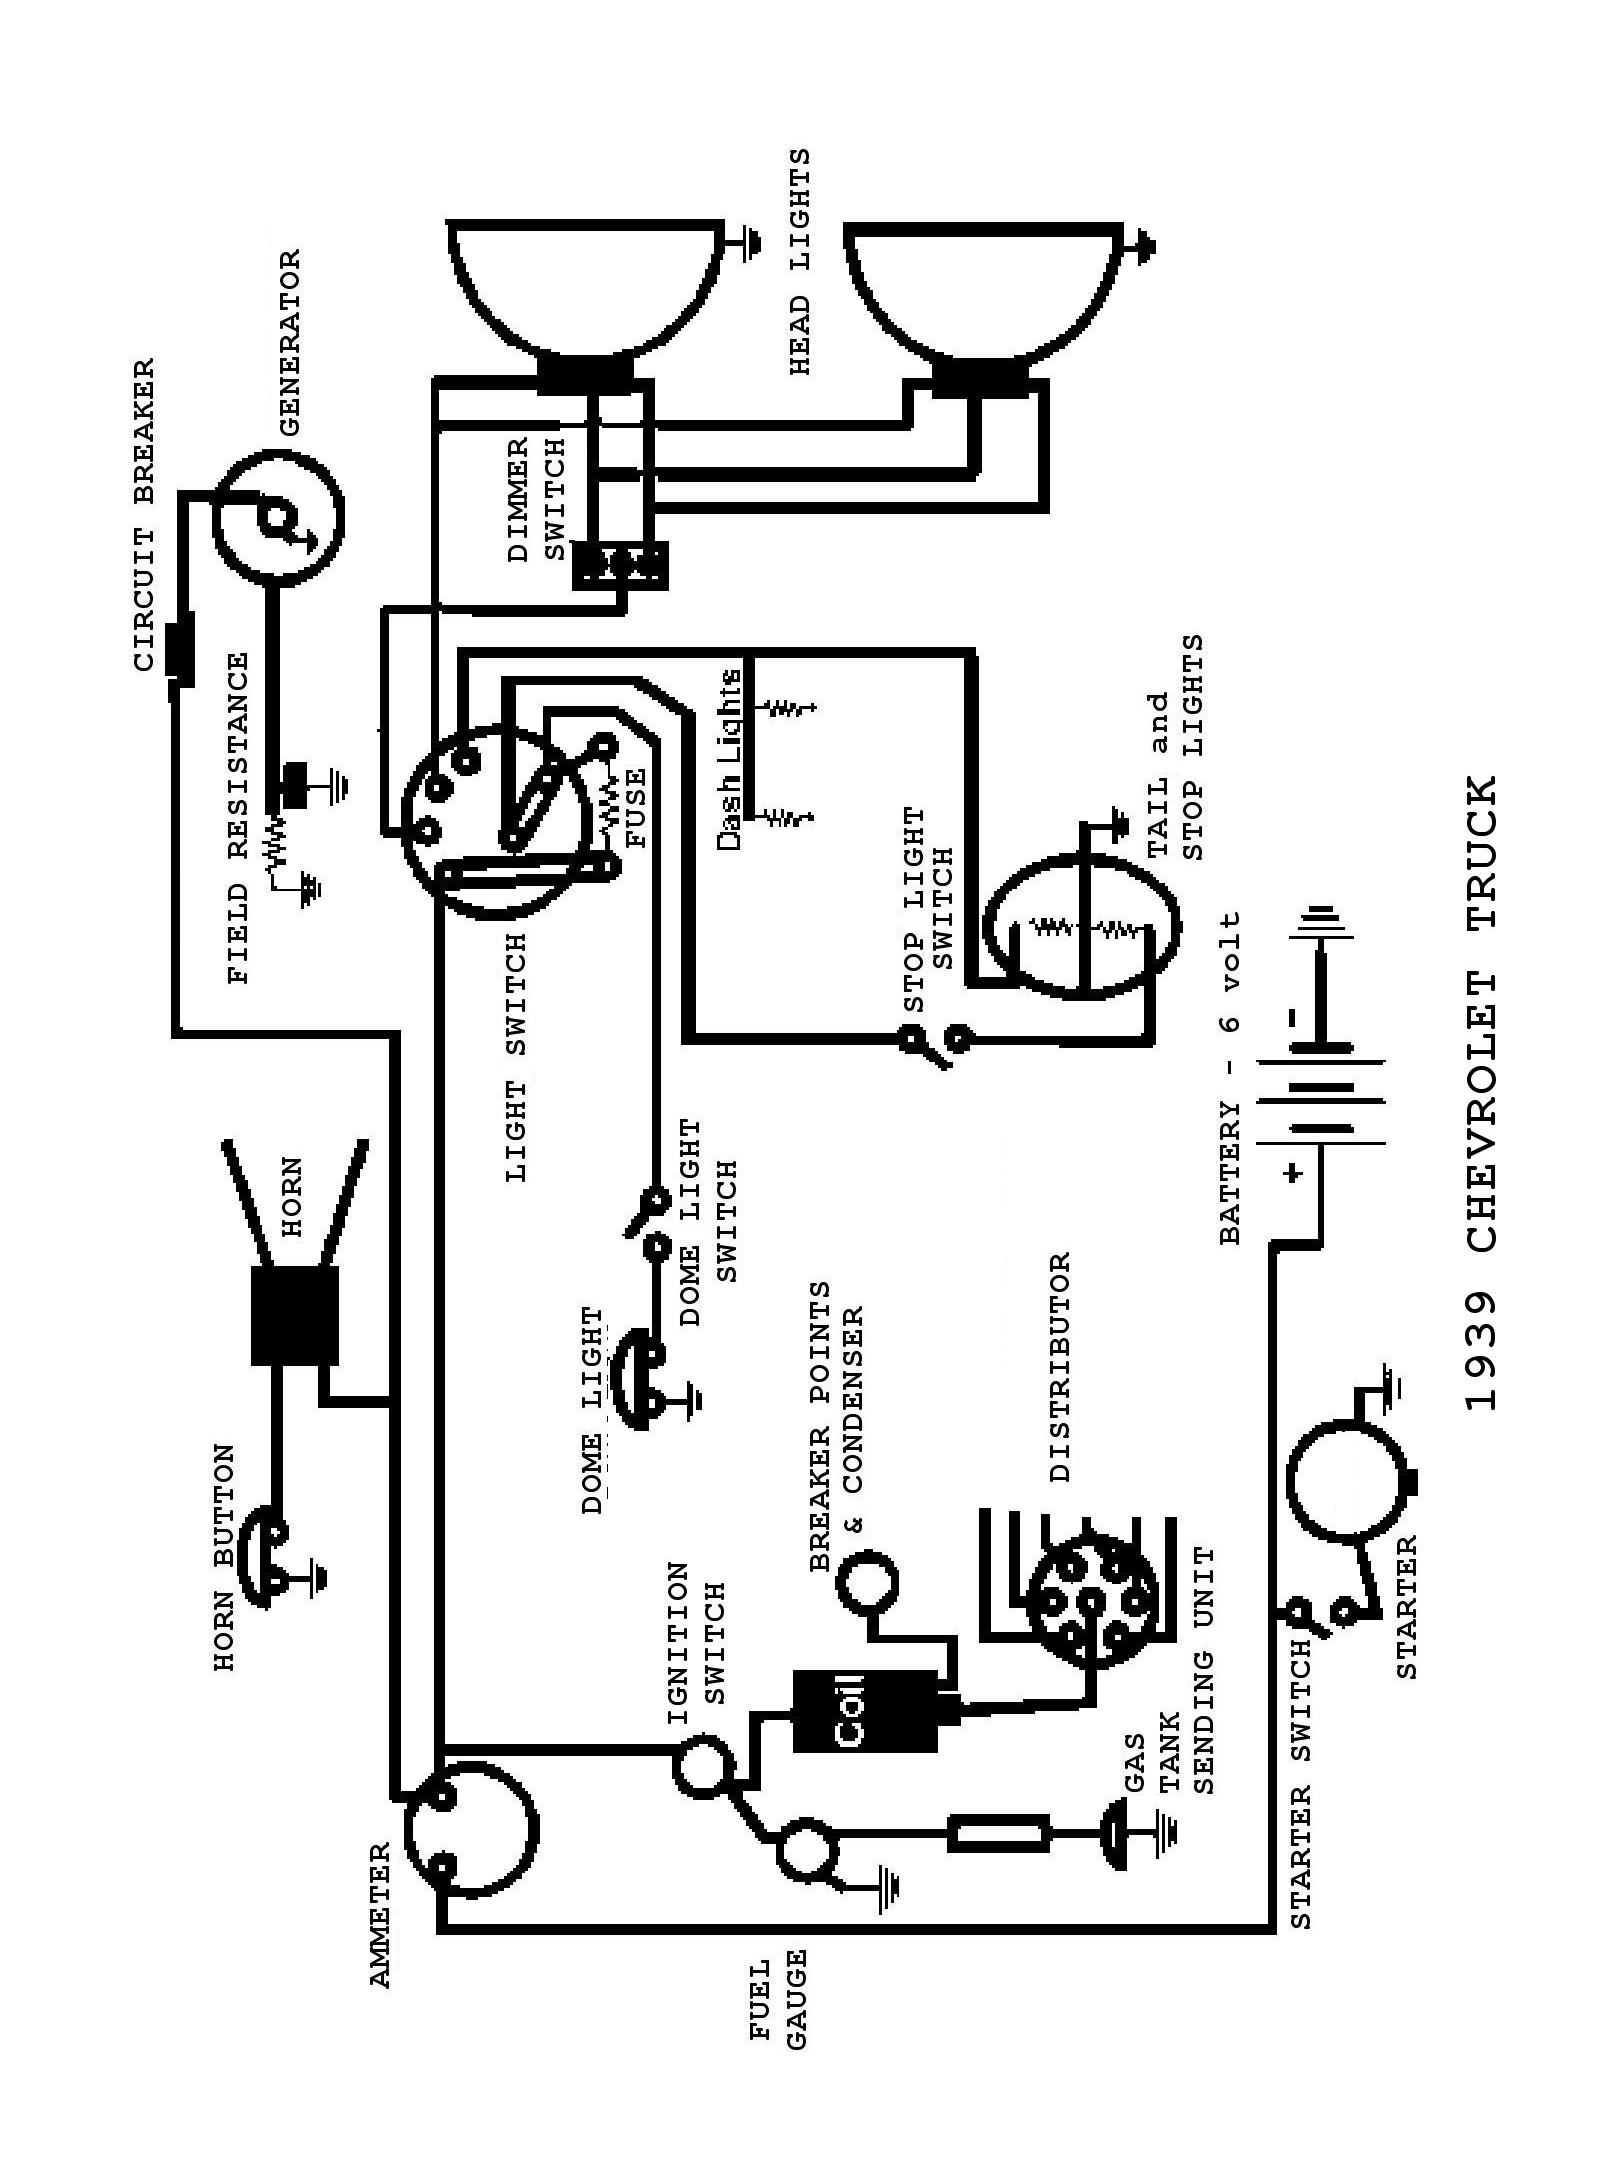 39truck 1931 chevrolet wiring diagram wiring diagram simonand 66 Chevy Headlight Switch Wiring Diagram at soozxer.org